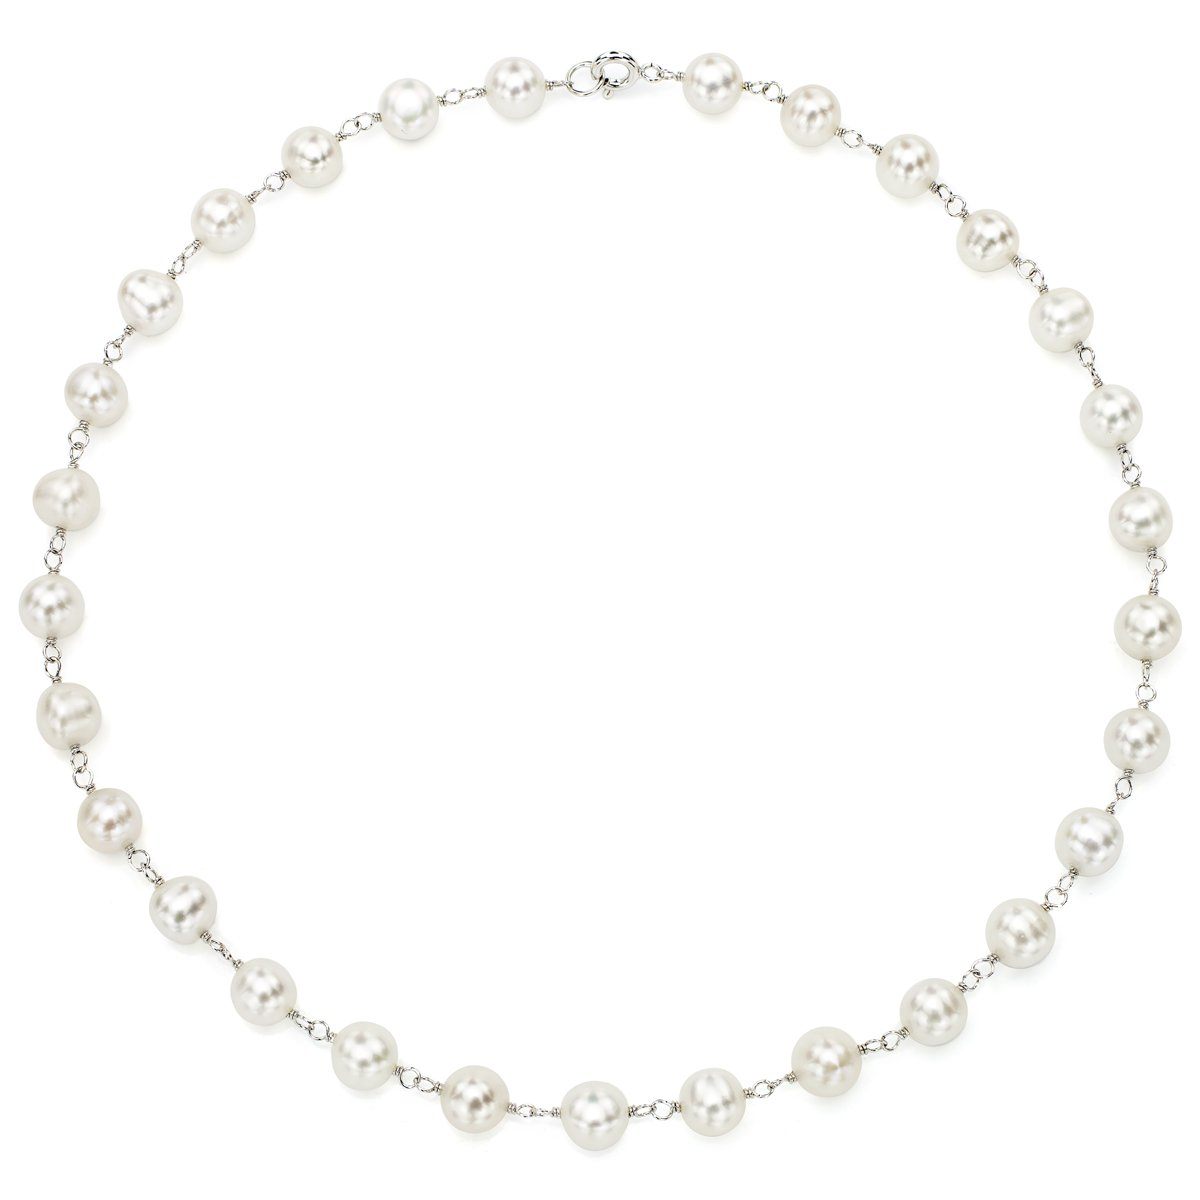 16 16 La Regis Jewelry Sterling Silver 8-8.5mm White Freshwater Cultured Pearl Link Choker Necklace